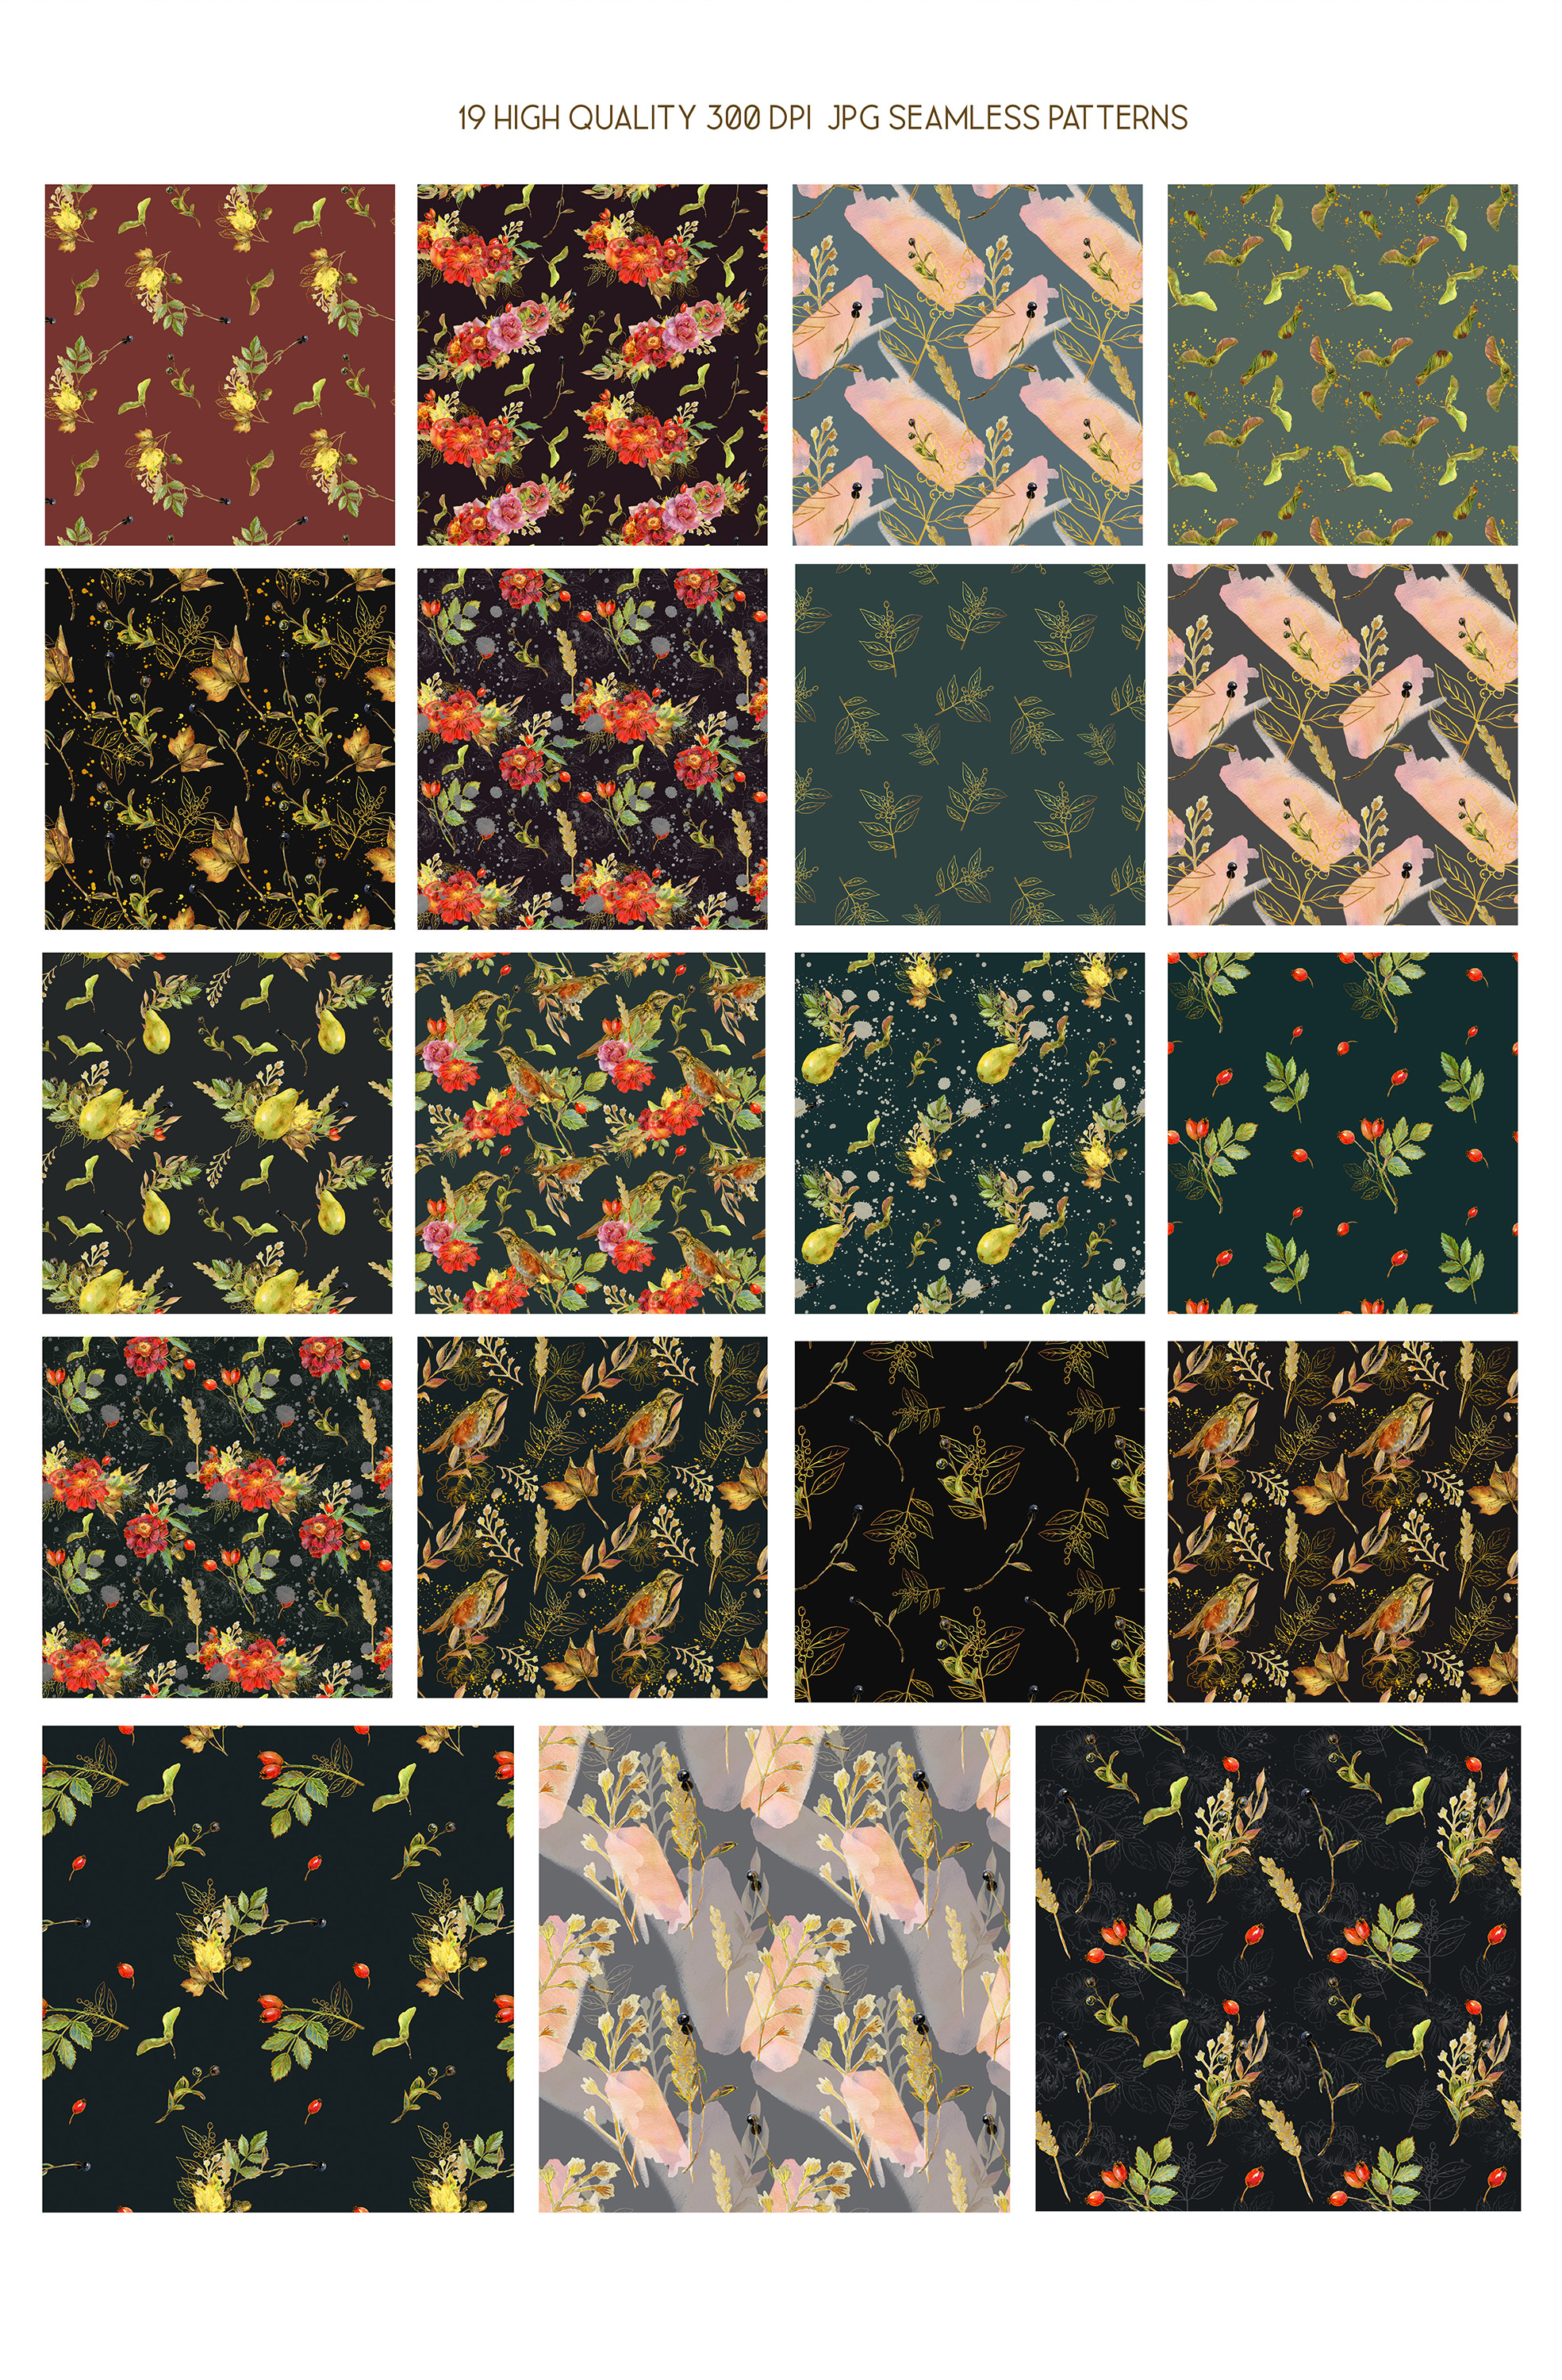 Royal Autumn watercolor seamless paper pack, fall pattern example image 2